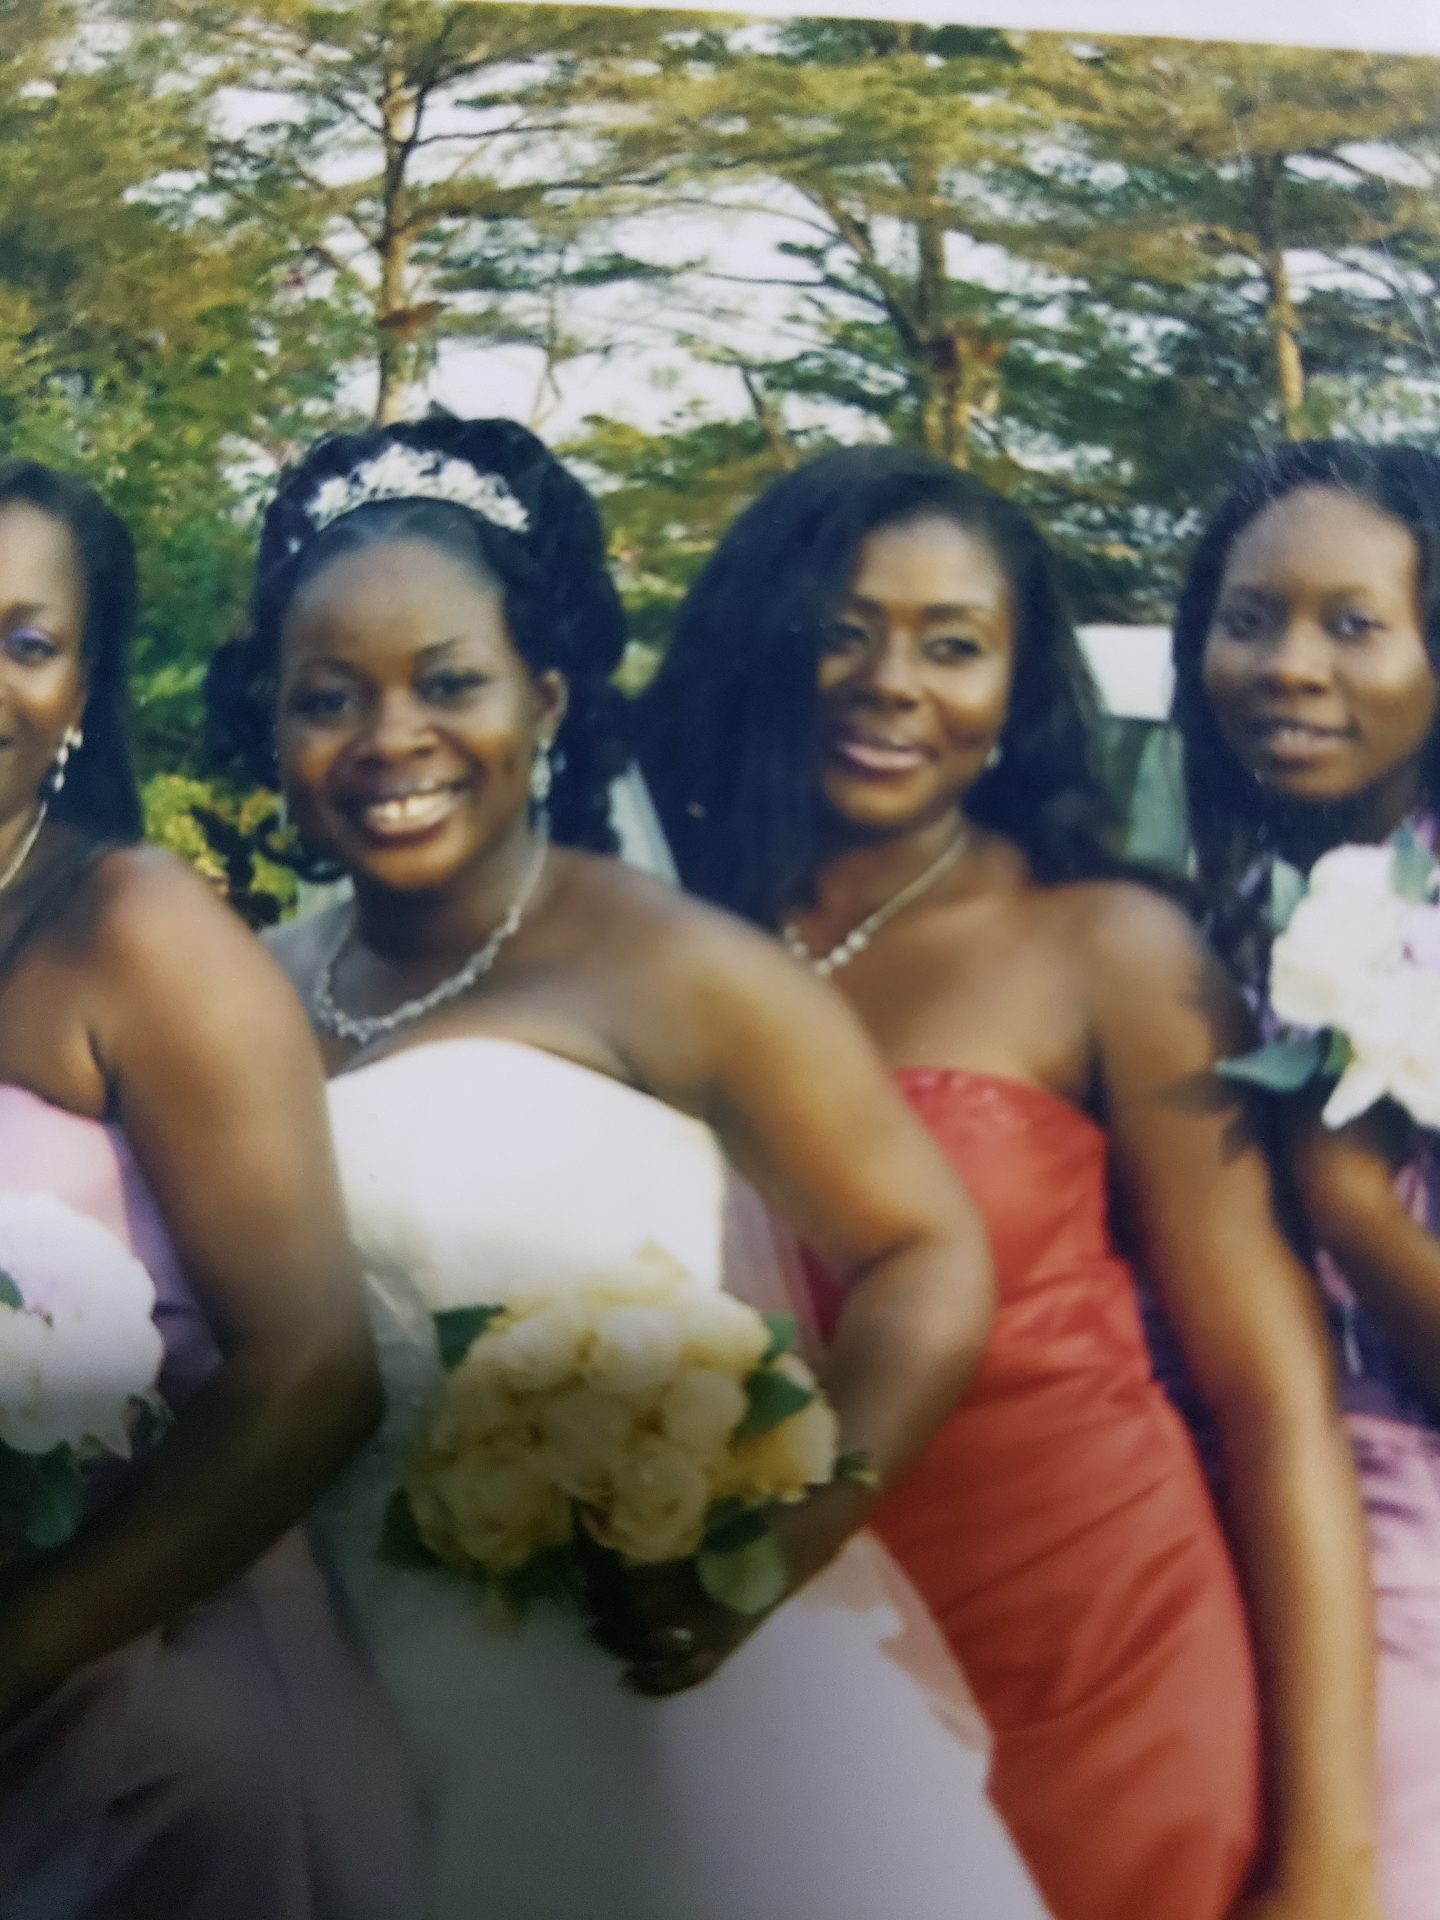 My chief bridesmaid, my twinny. Couldn't get a clearer picture but you're one of the reasons why I'll never forget this day